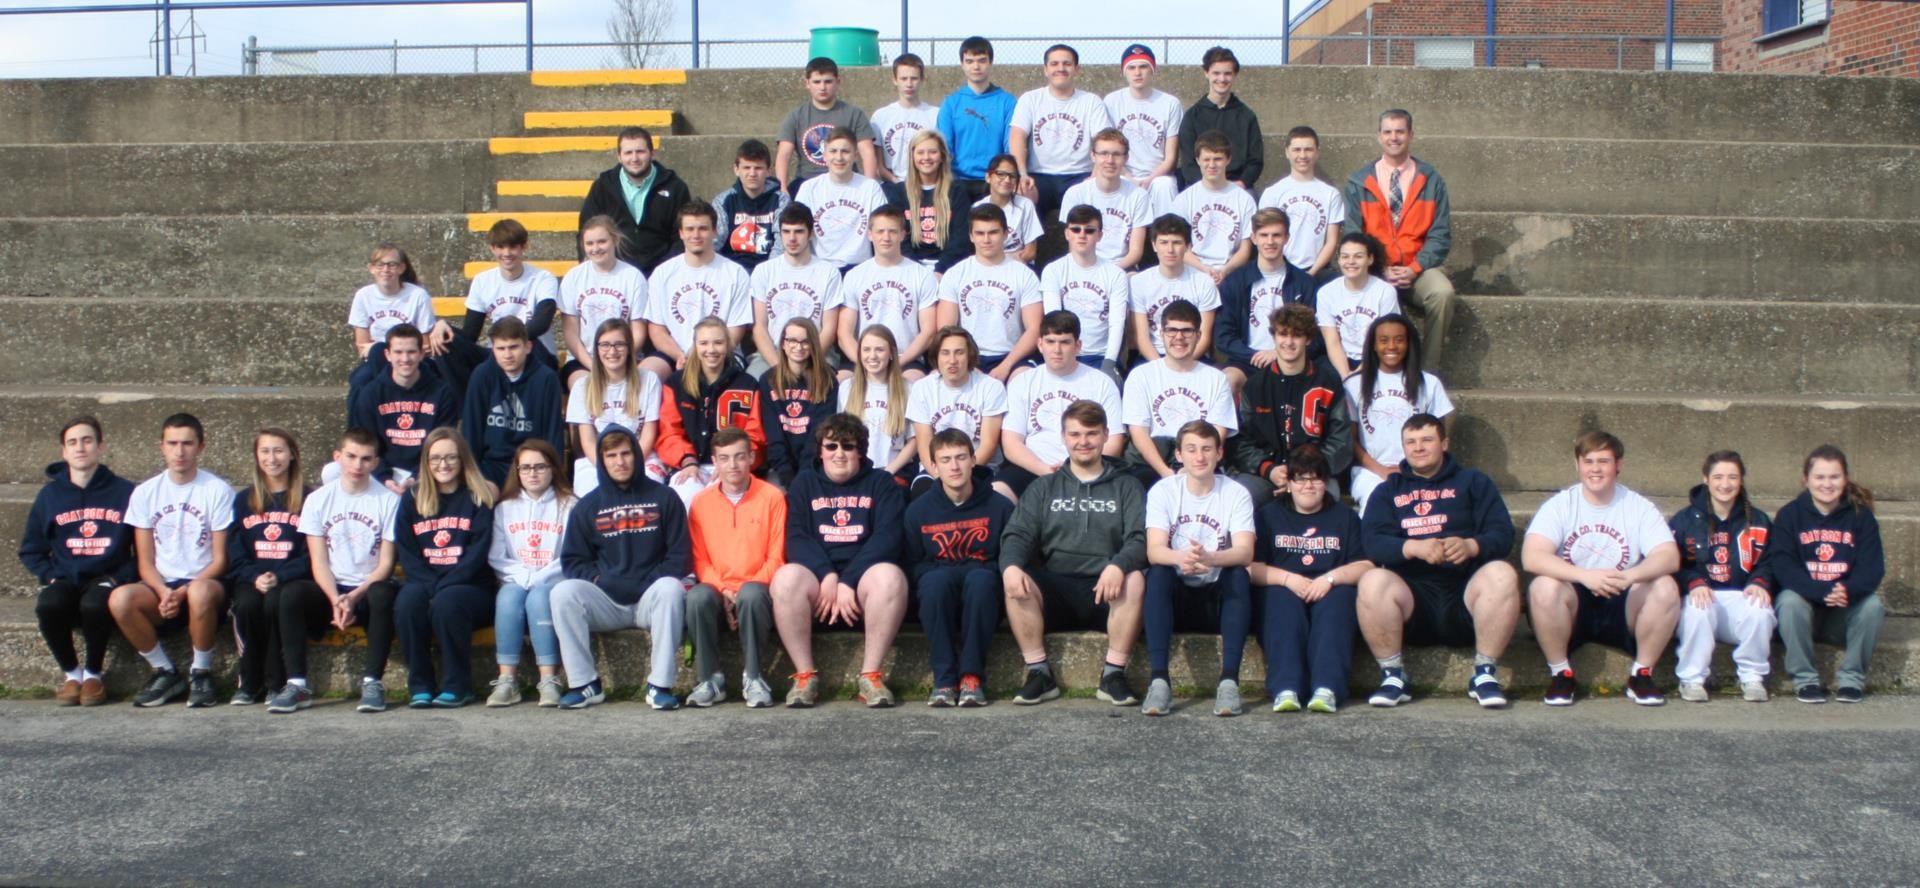 photo of the track and field team